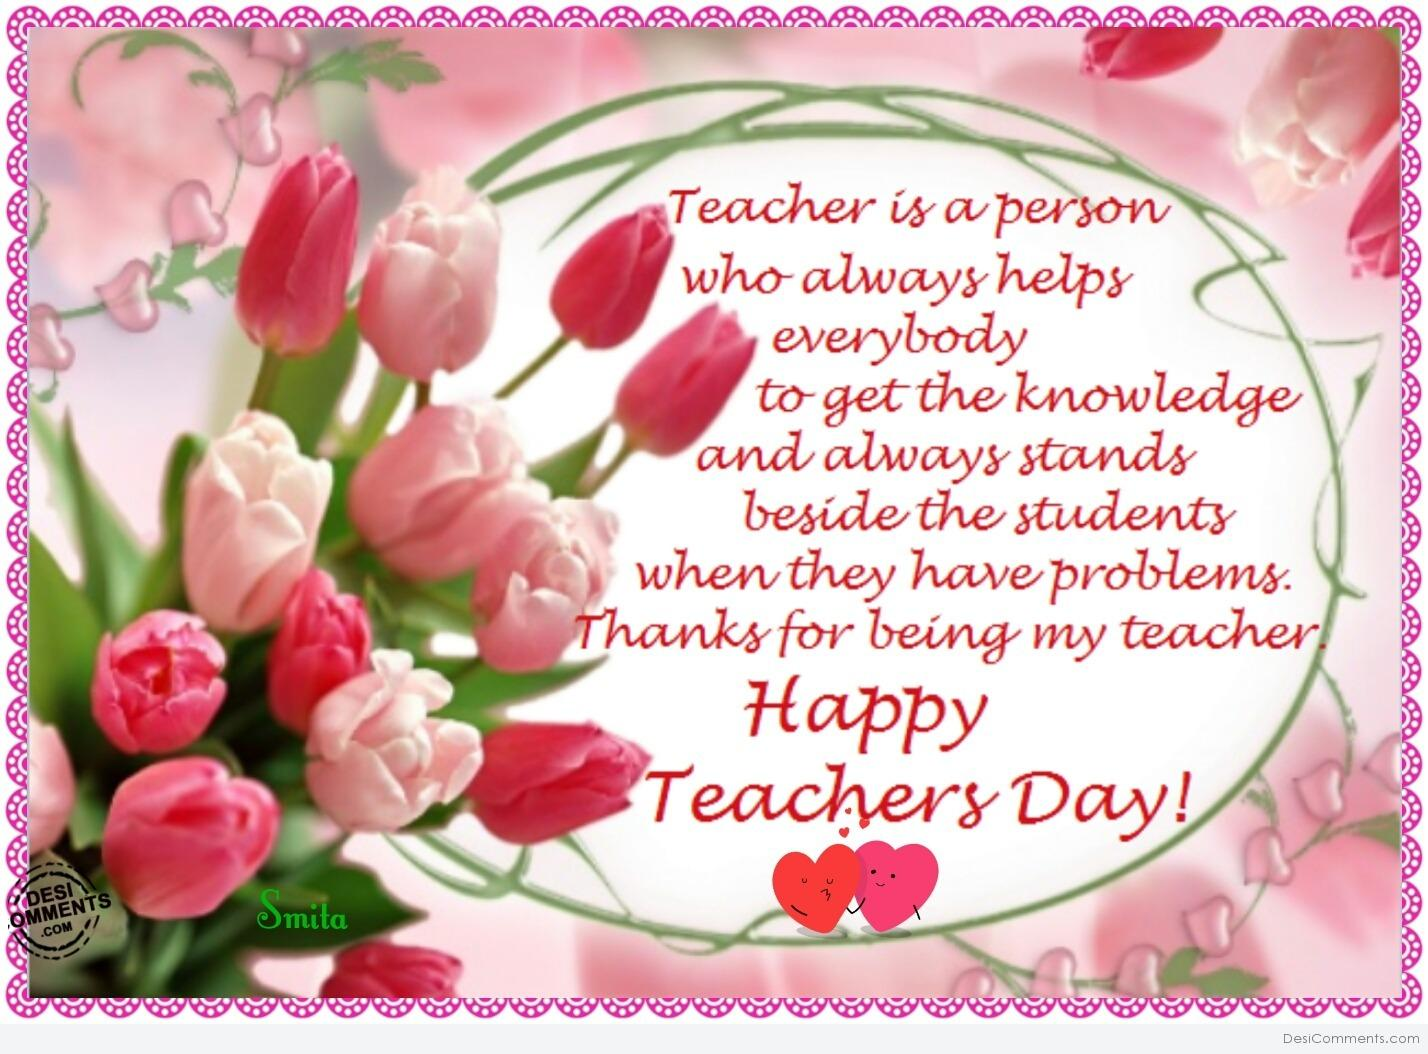 essay on teachers day celebration in my school essay essay on teachers day celebration in my school